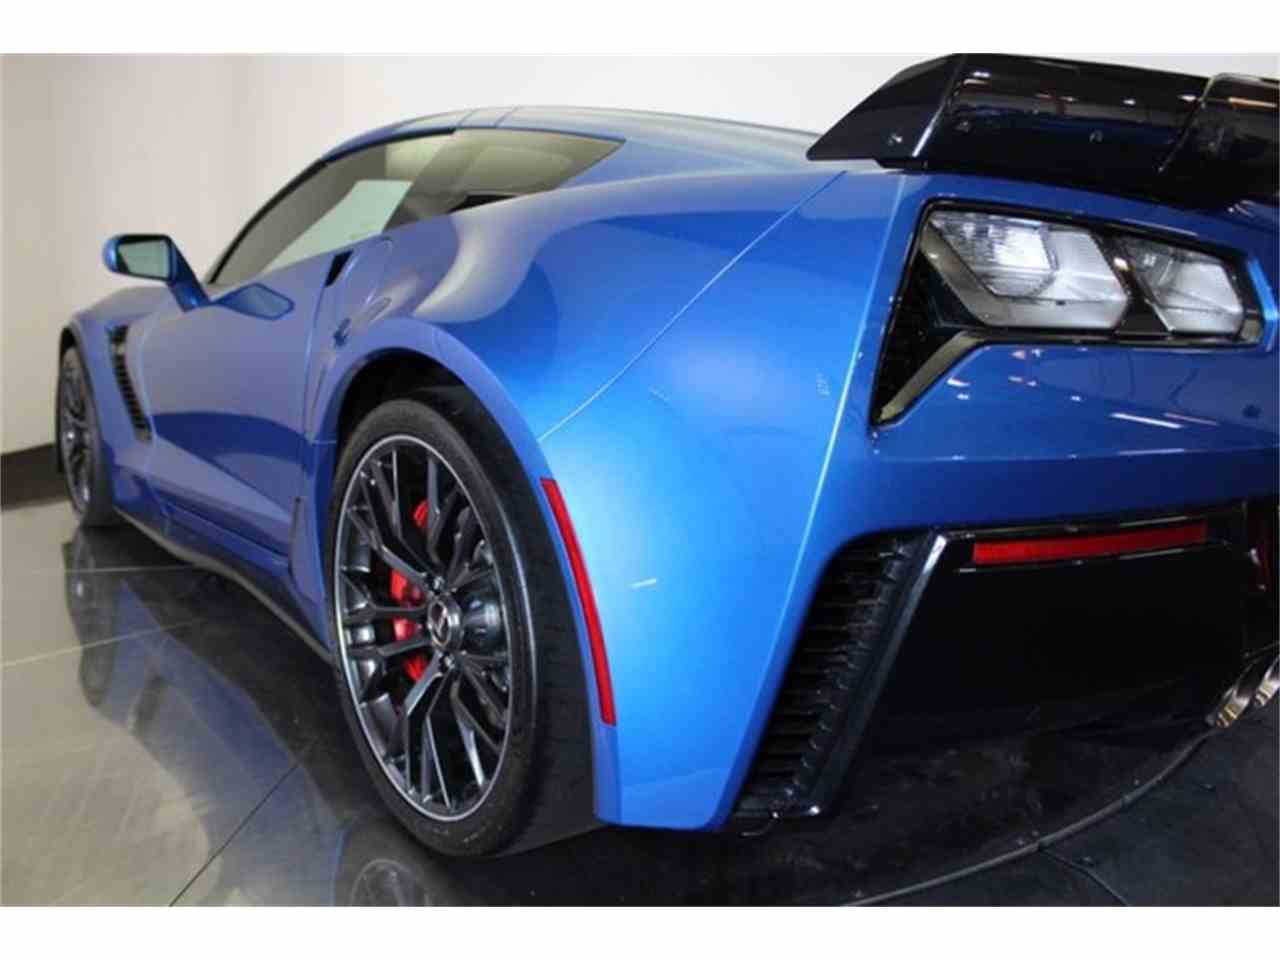 Large Picture of 2016 Chevrolet Corvette located in California - $75,900.00 Offered by DC Motors - LFTG